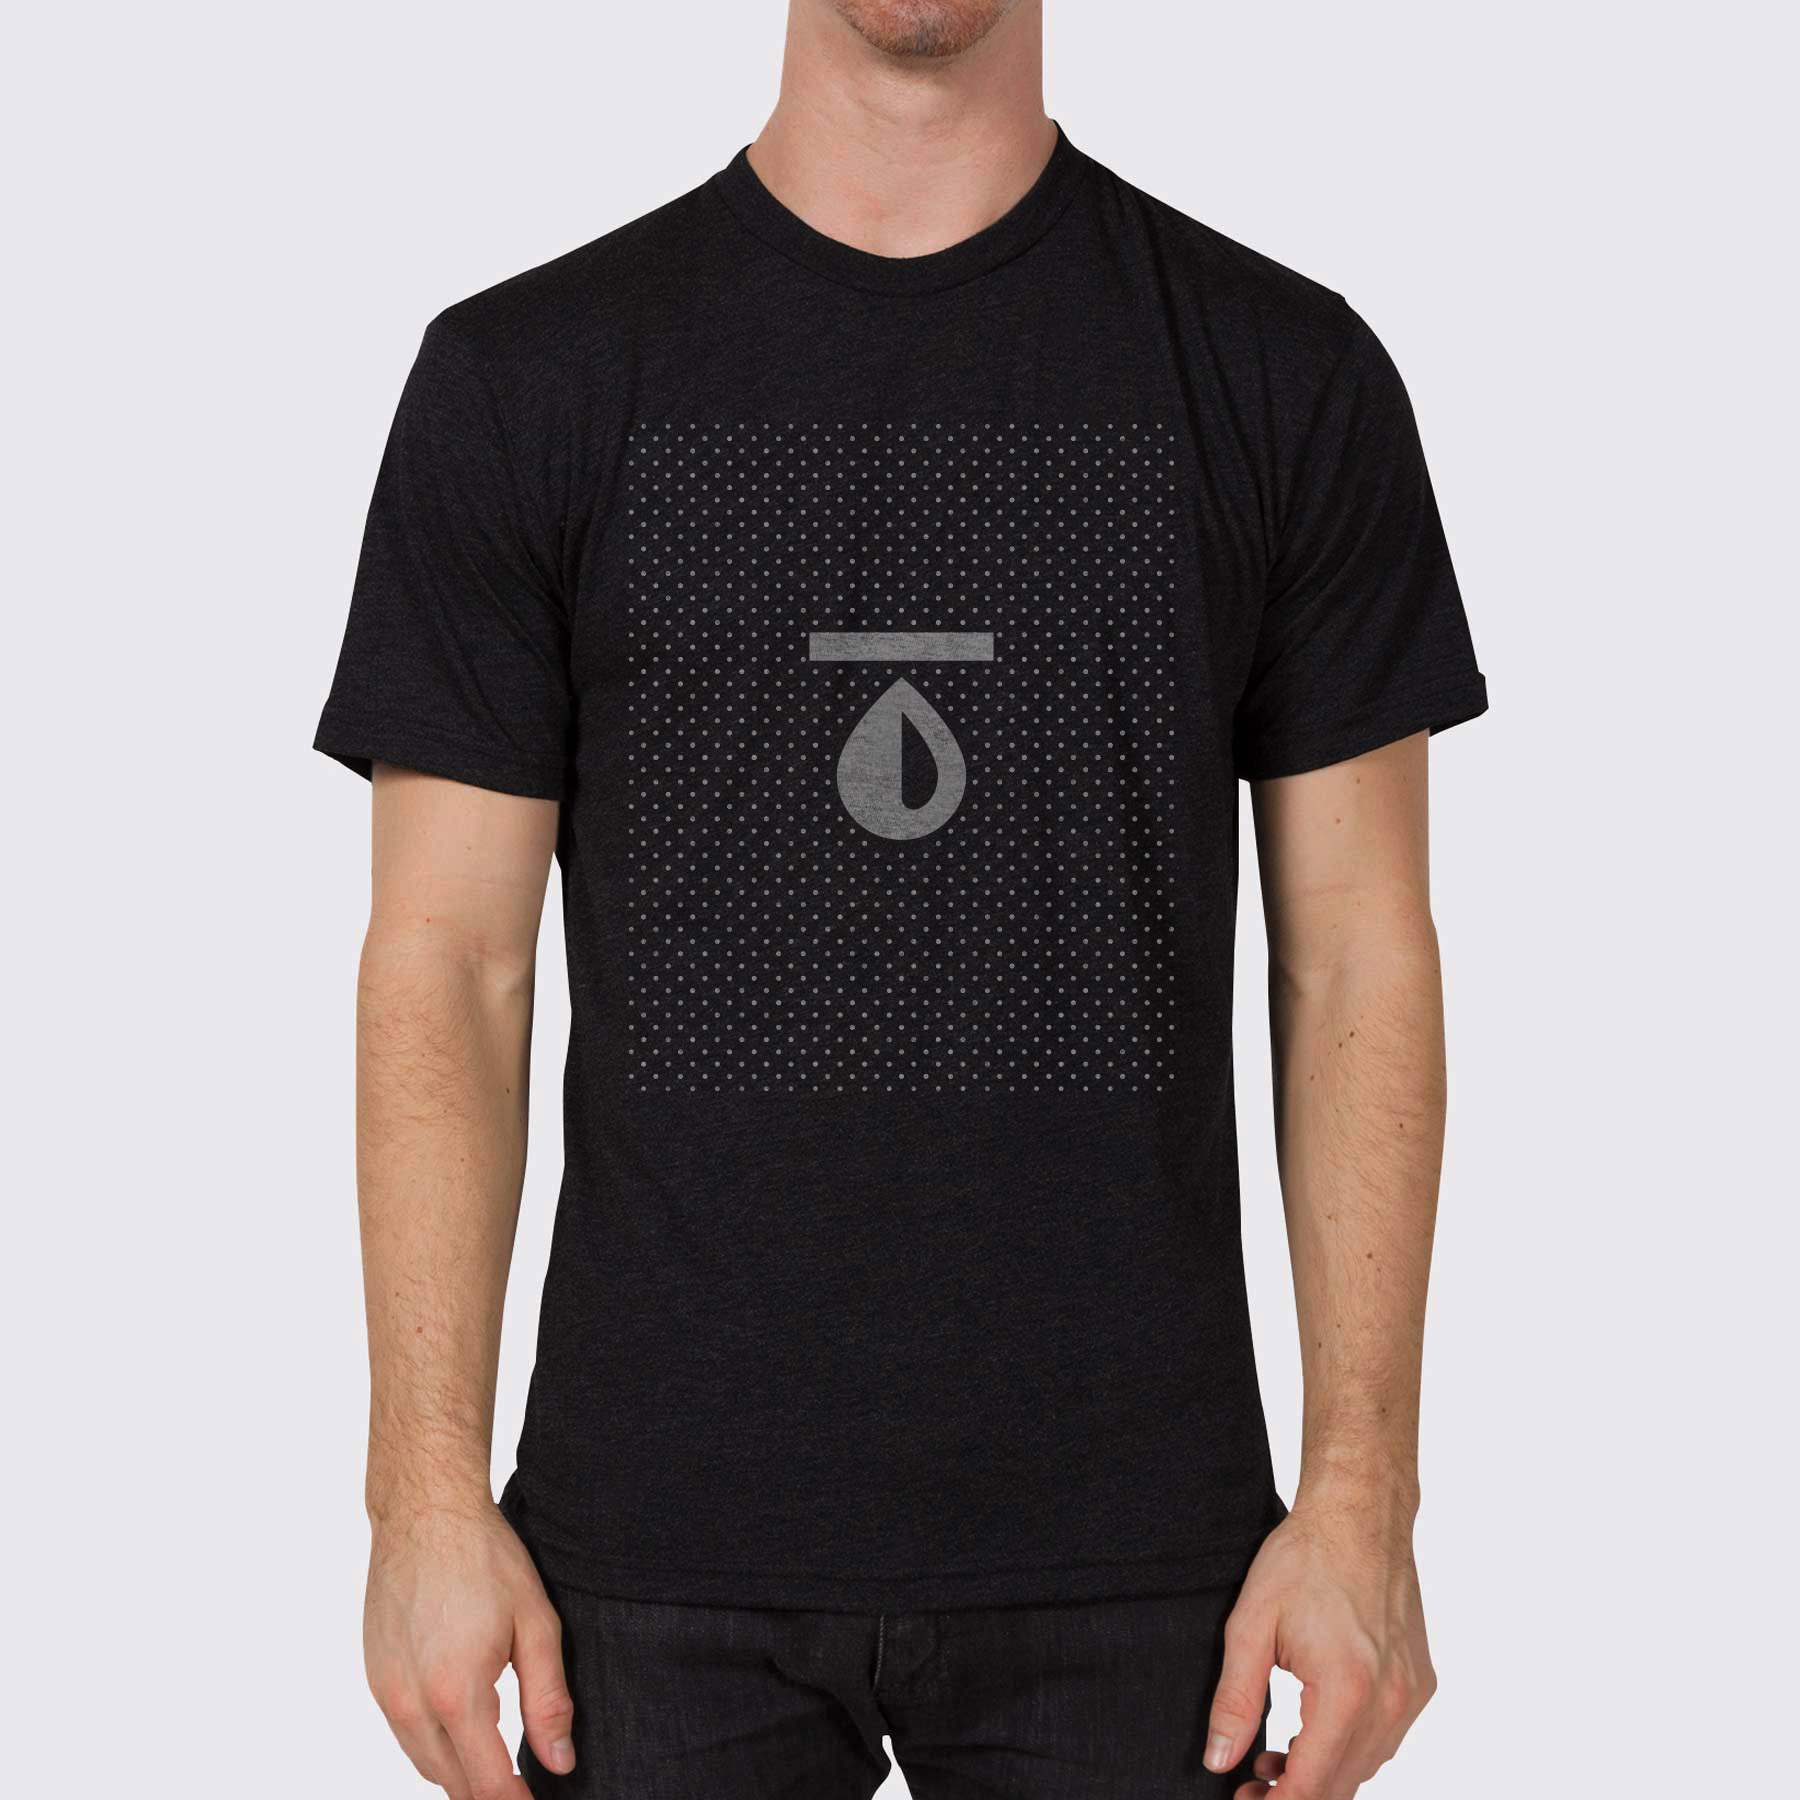 Black t shirt mock up - Black T Shirt Mock Up 18